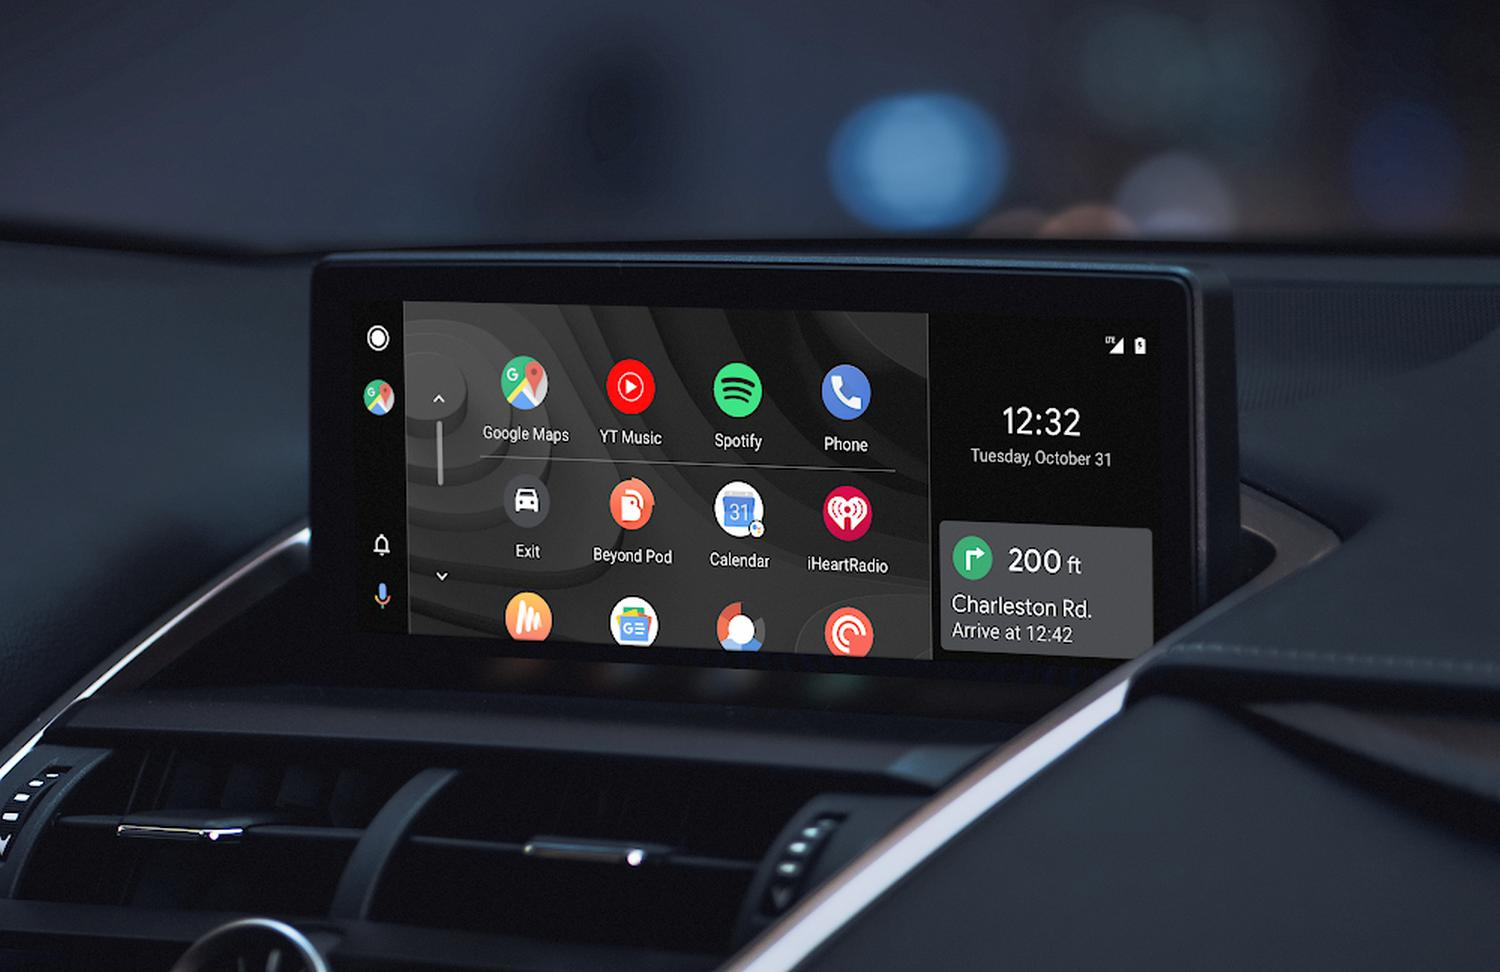 Android Car: Finally wallpapers!  All wallpapers of the infotainment platform can be downloaded right here